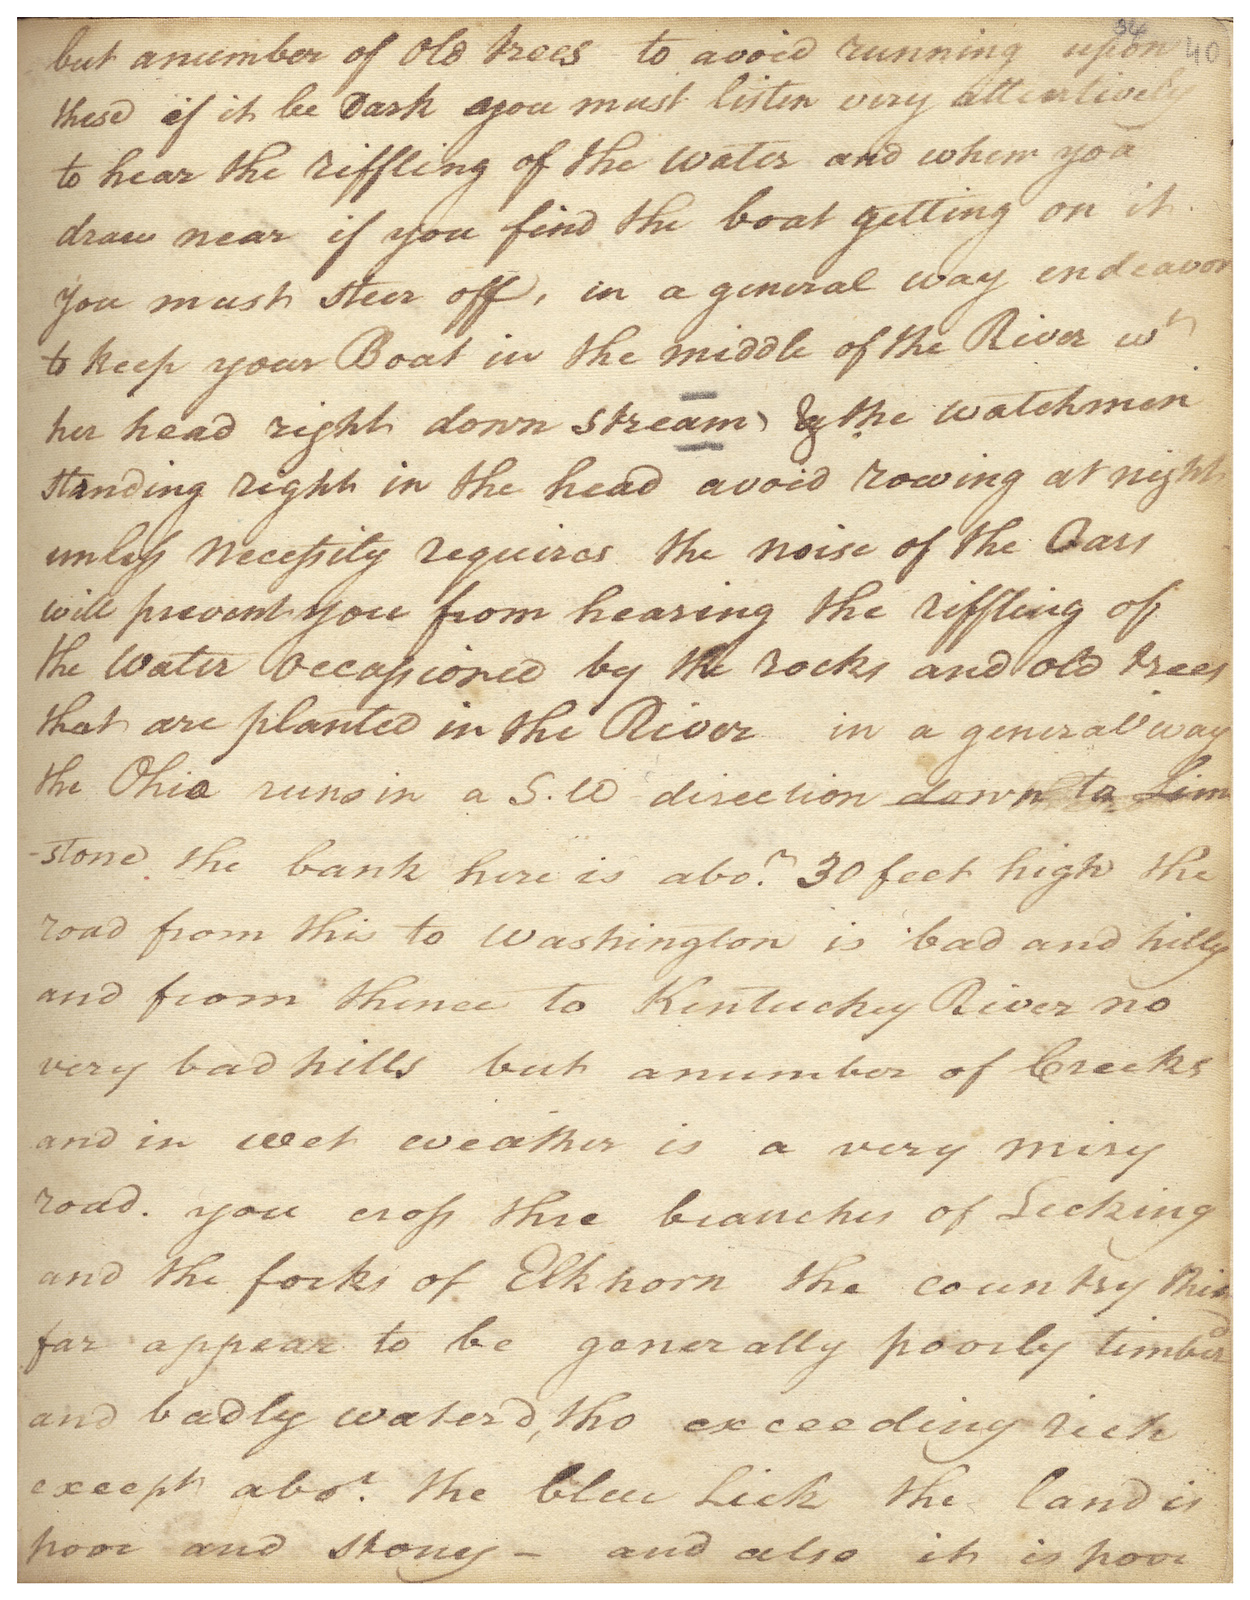 Journal of William Brown while traveling from Virginia to Kentucky